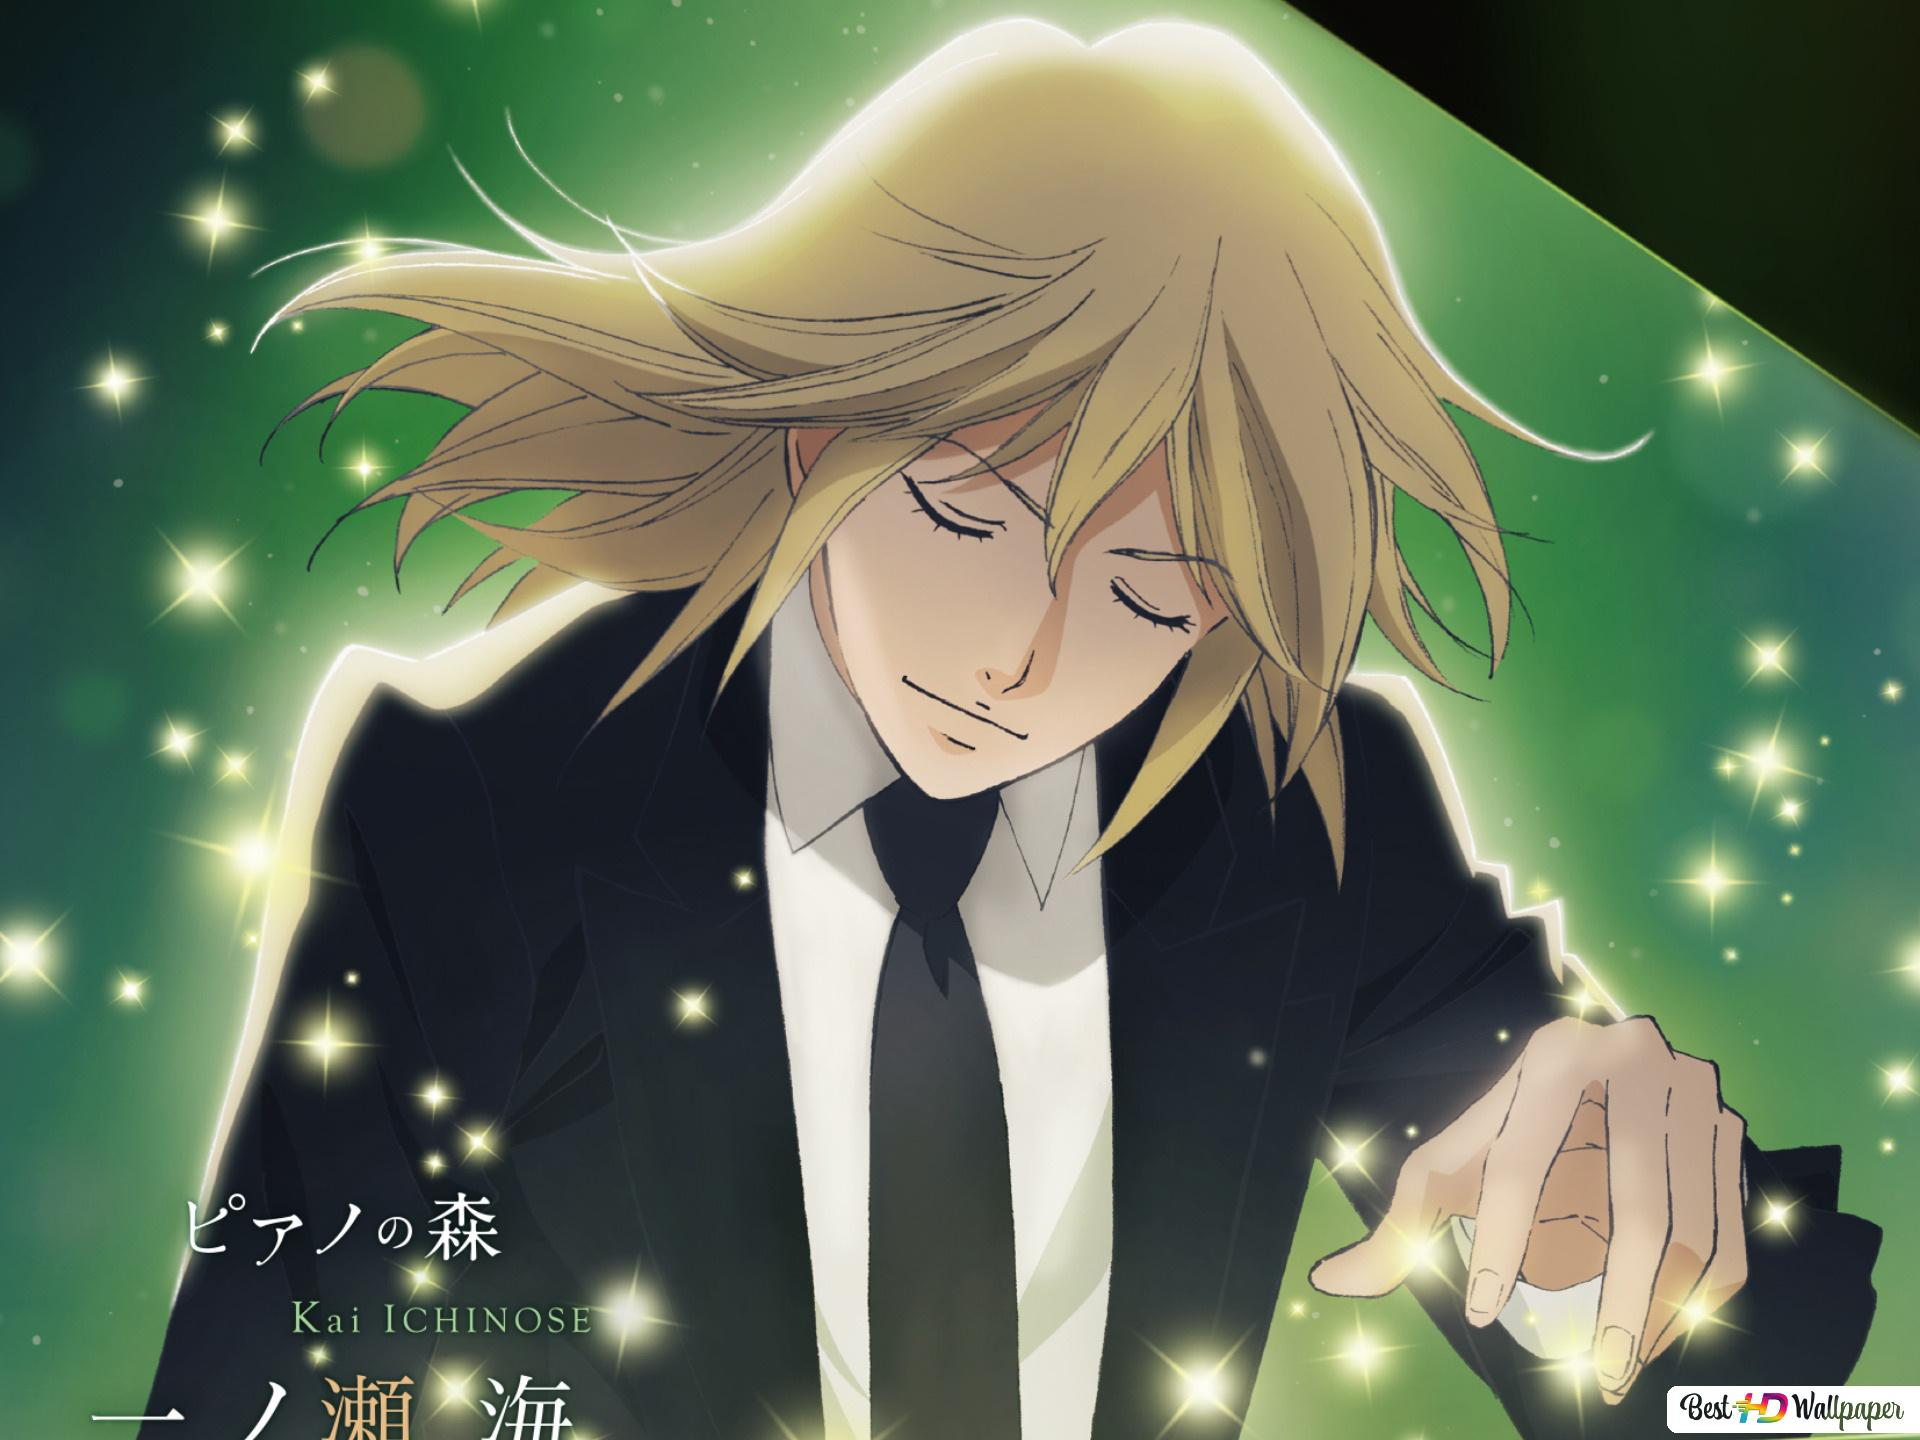 Piano No Mori Kai Ichinose Hd Wallpaper Download